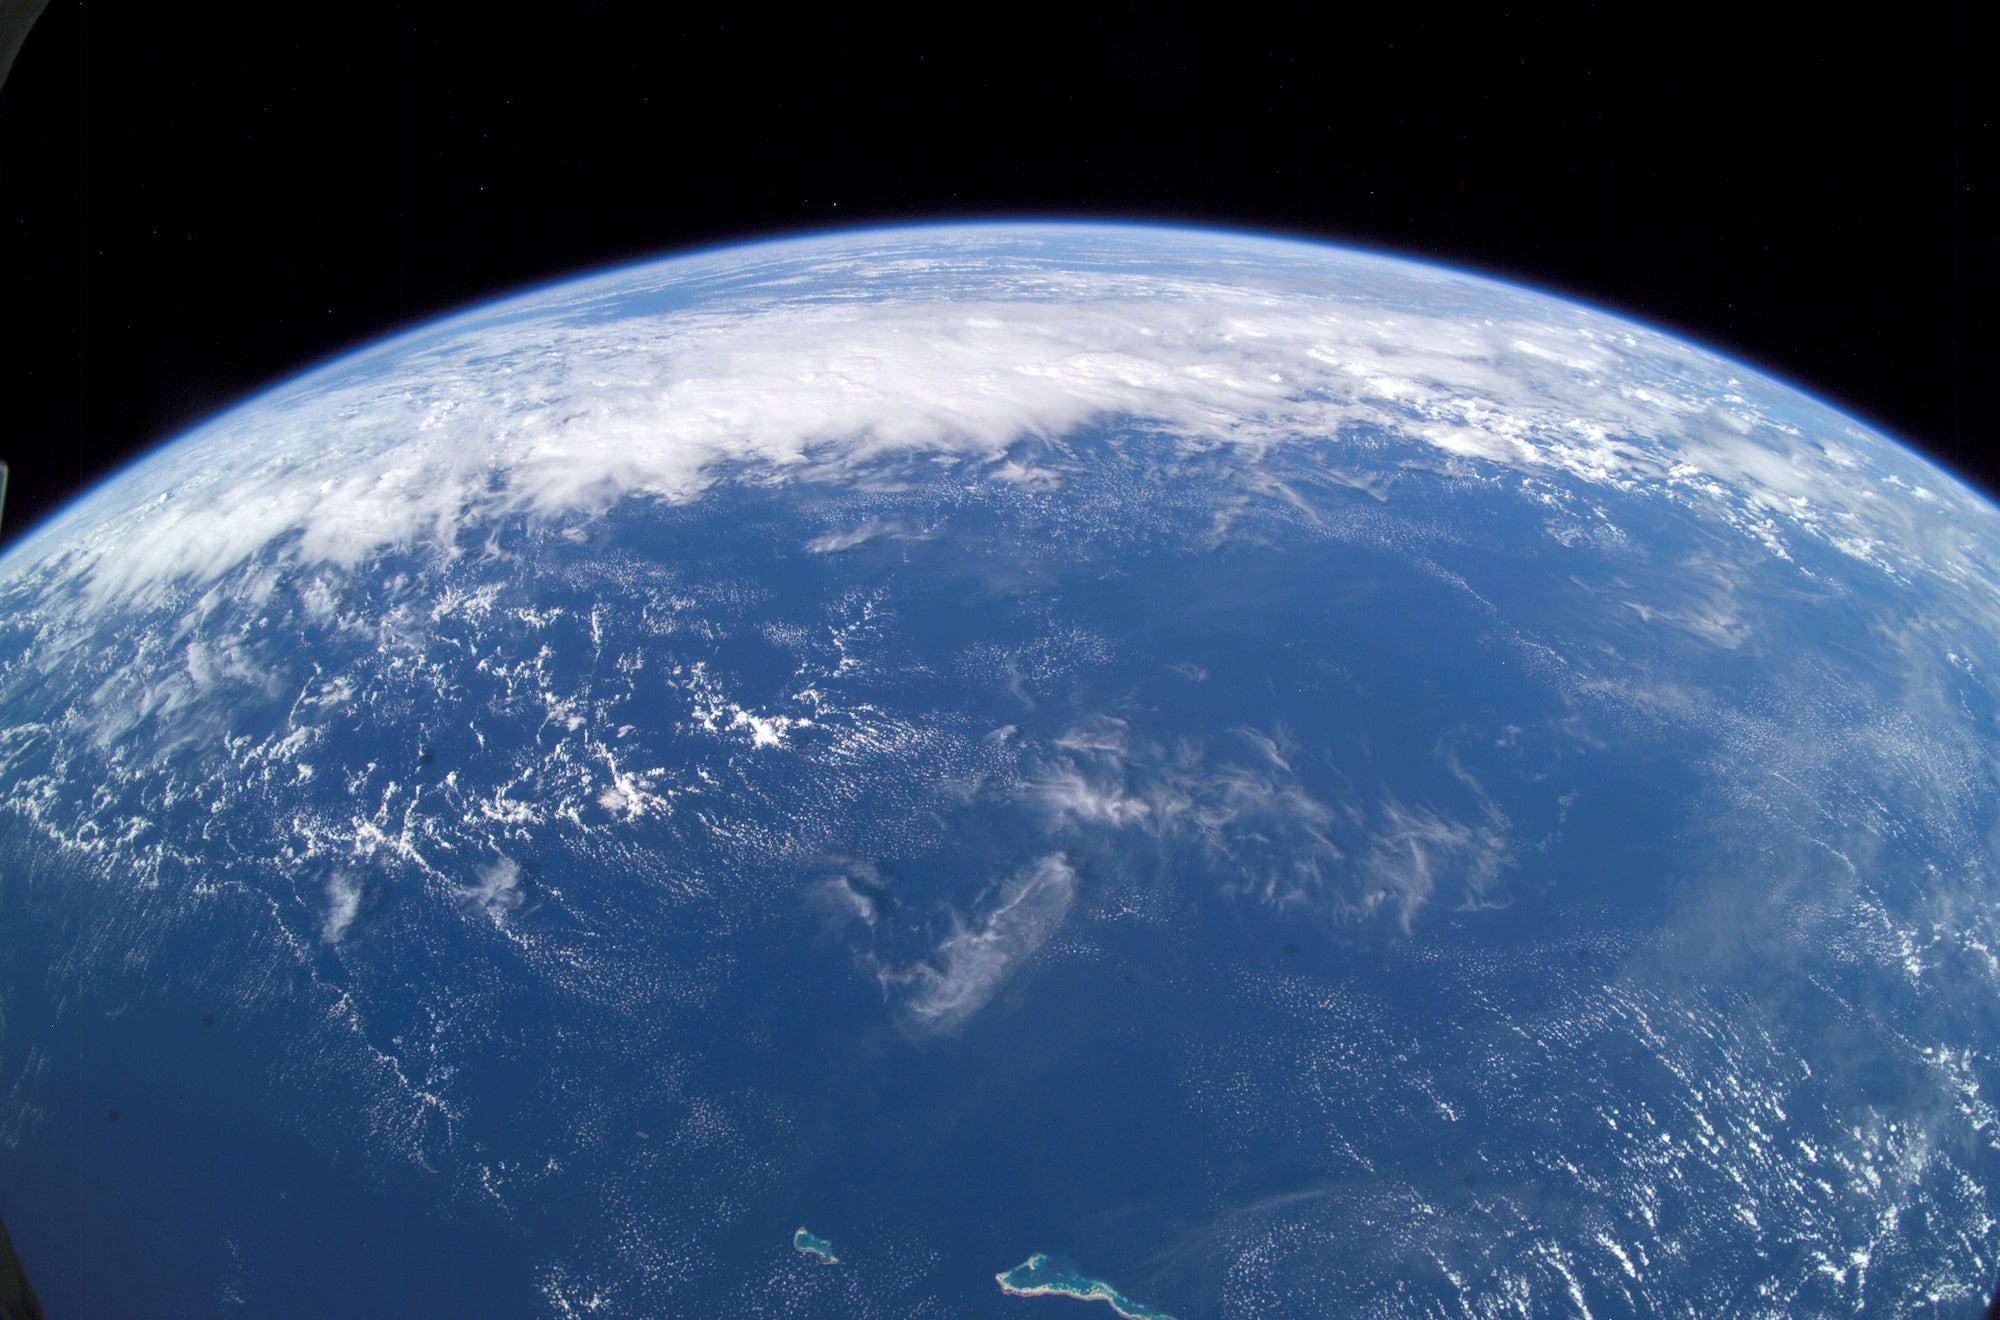 Photo of Earth from space showing mostly ocean